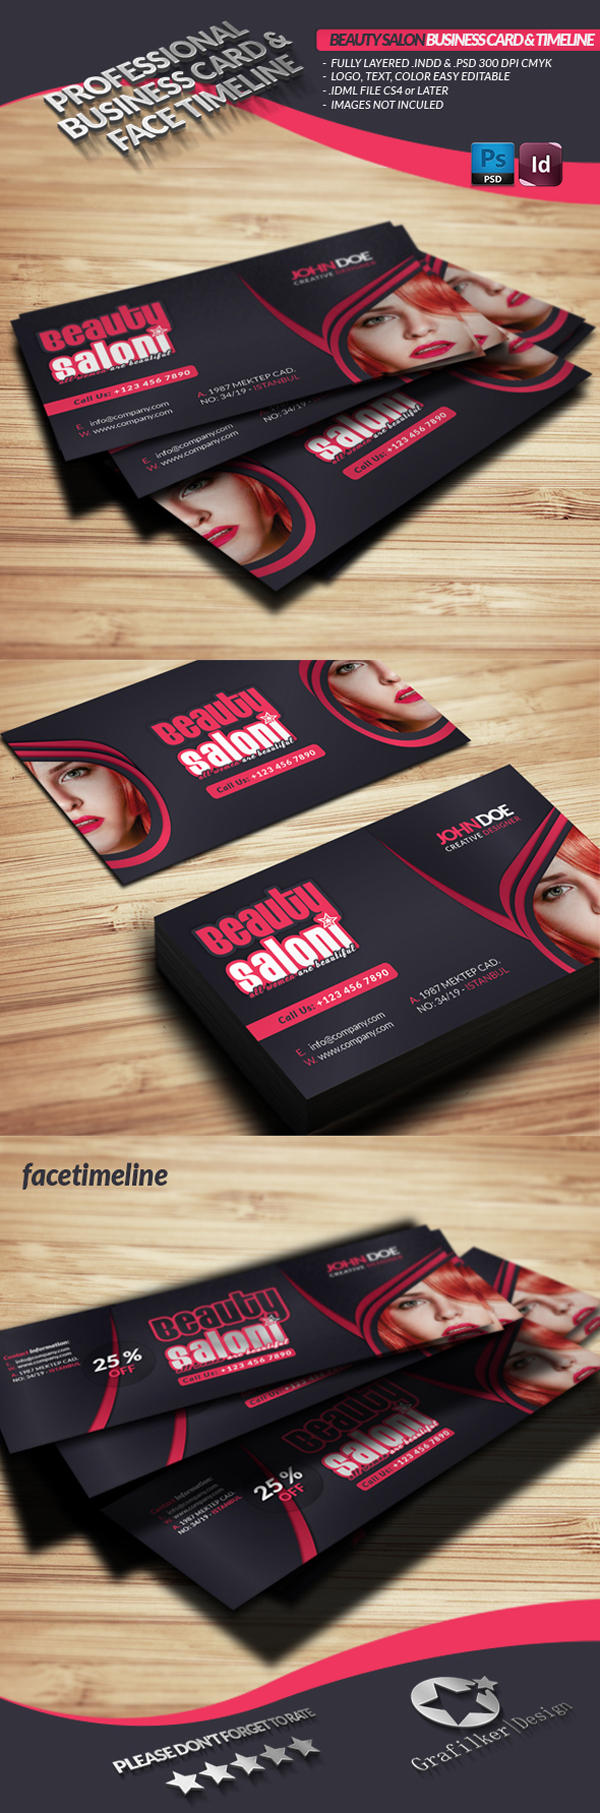 Professional Business Card Templates By Grafilker On Envato Studio - Professional business cards templates